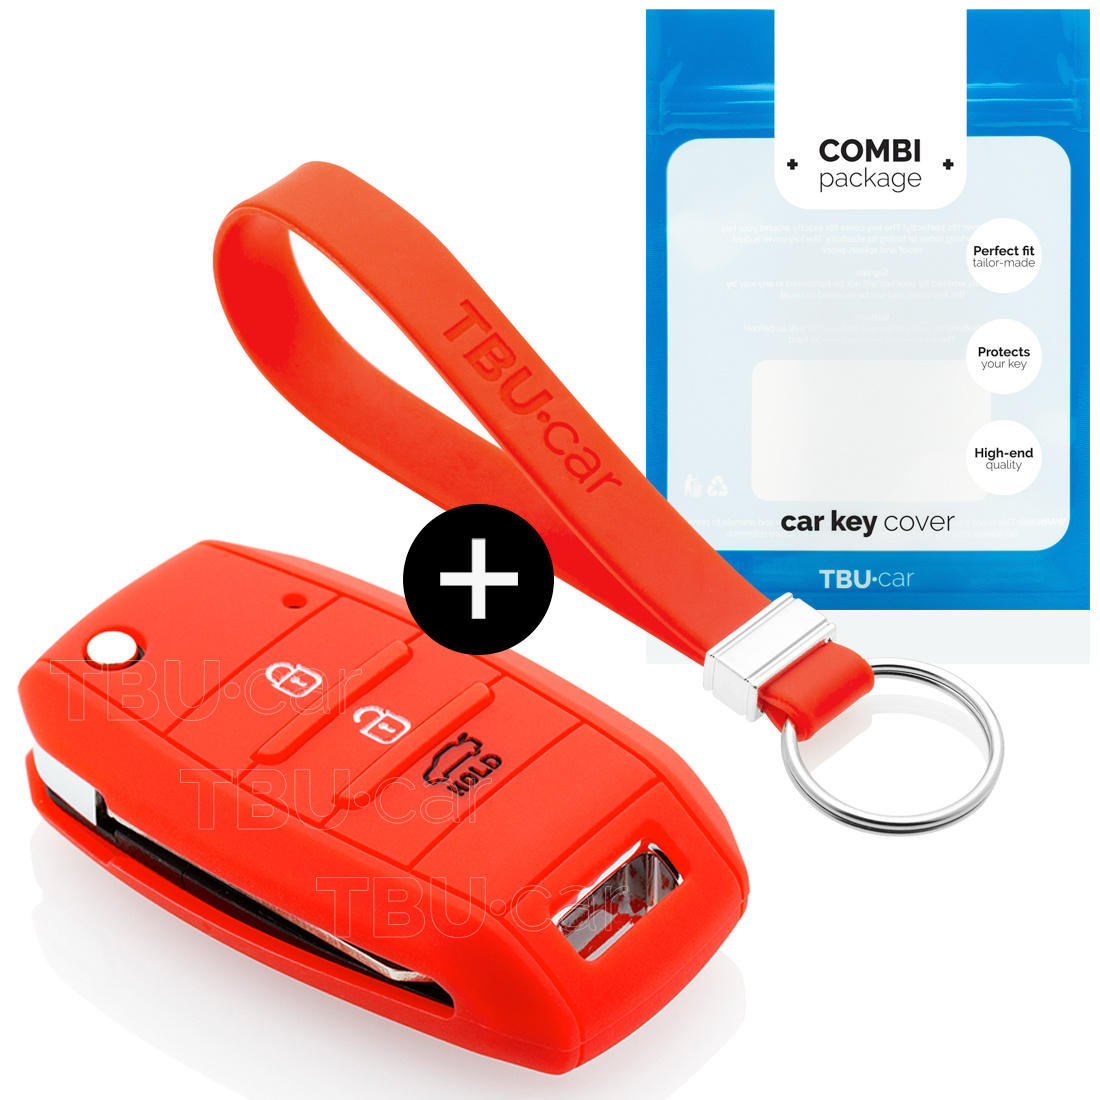 Kia Car key cover - Silicone Protective Remote Key Shell - FOB Case Cover - Red